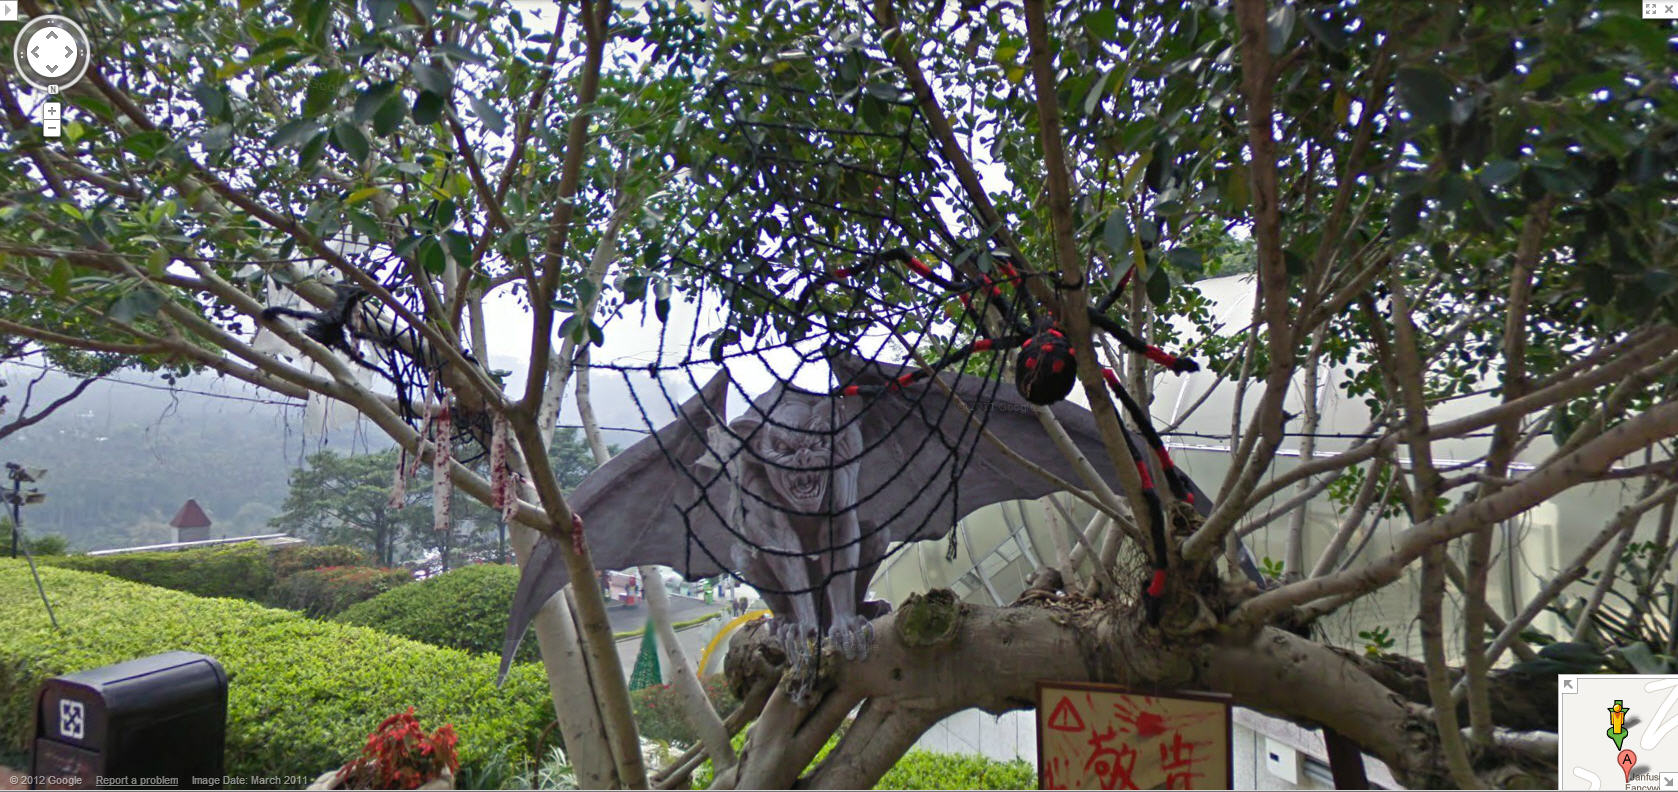 happy-halloween-from-google-maps-street-view-taiwan